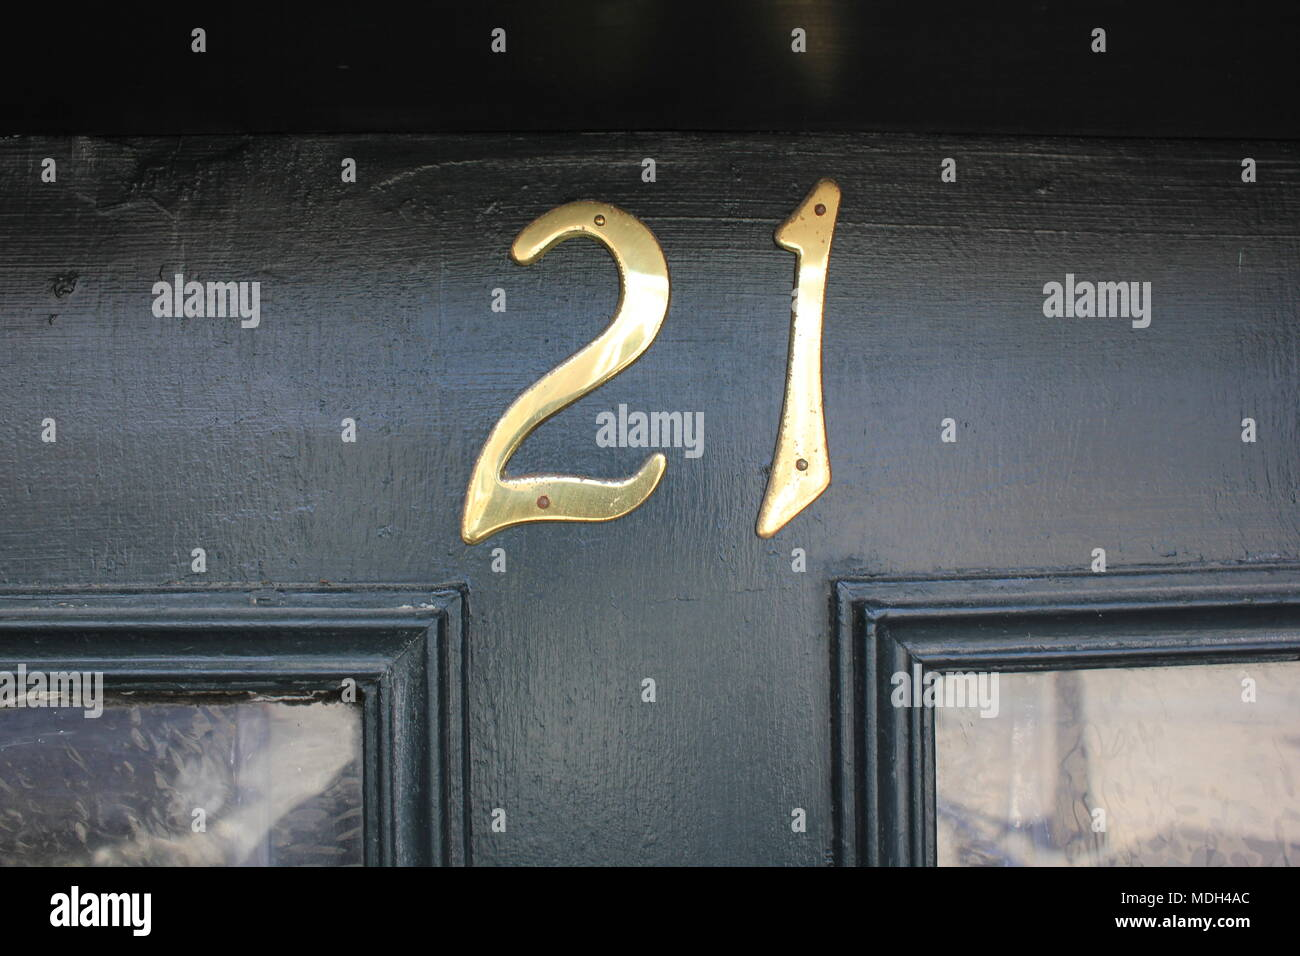 The number 21 signifying an address designation. - Stock Image